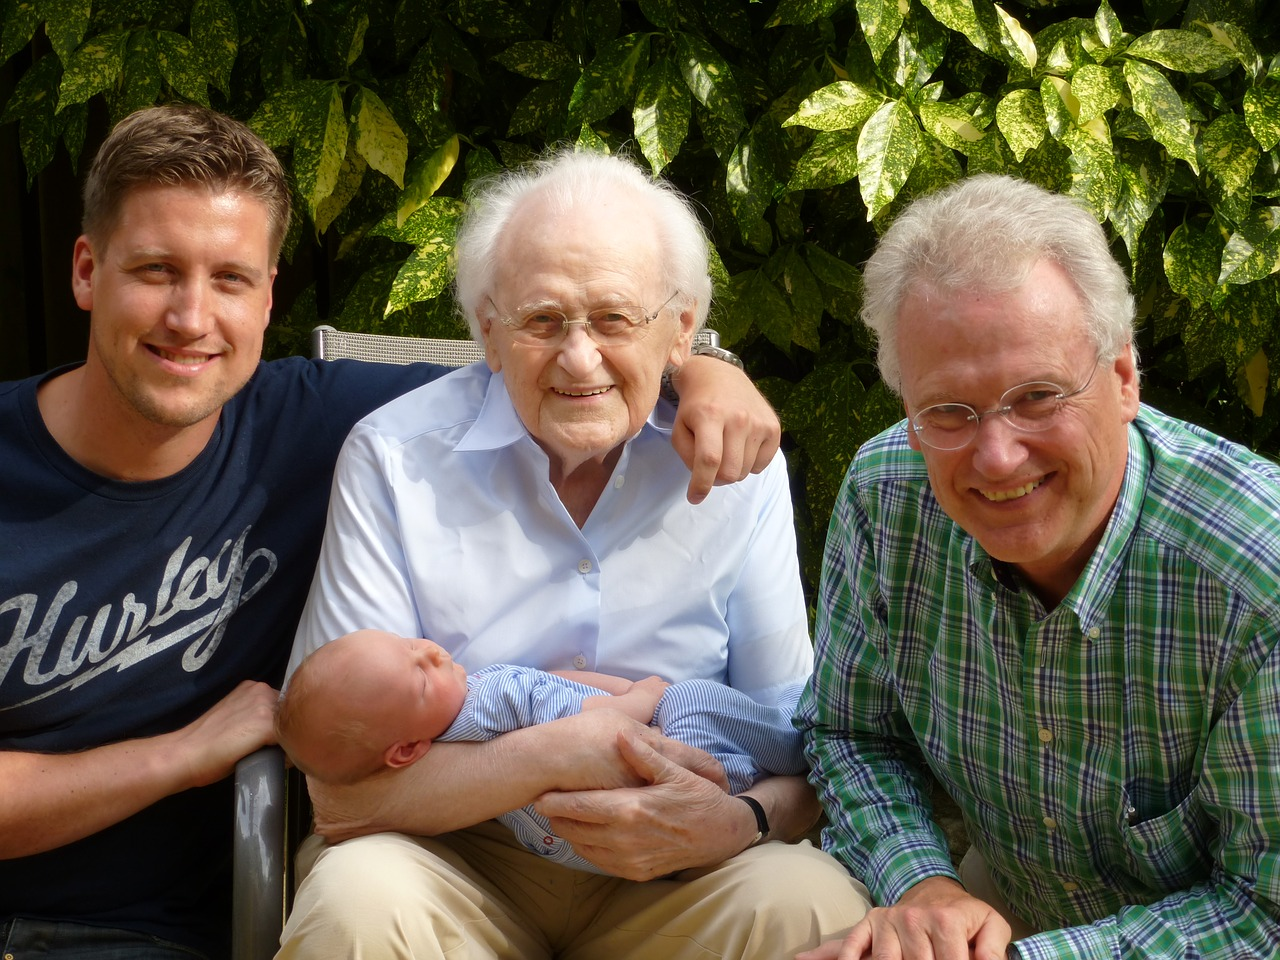 four generations of males